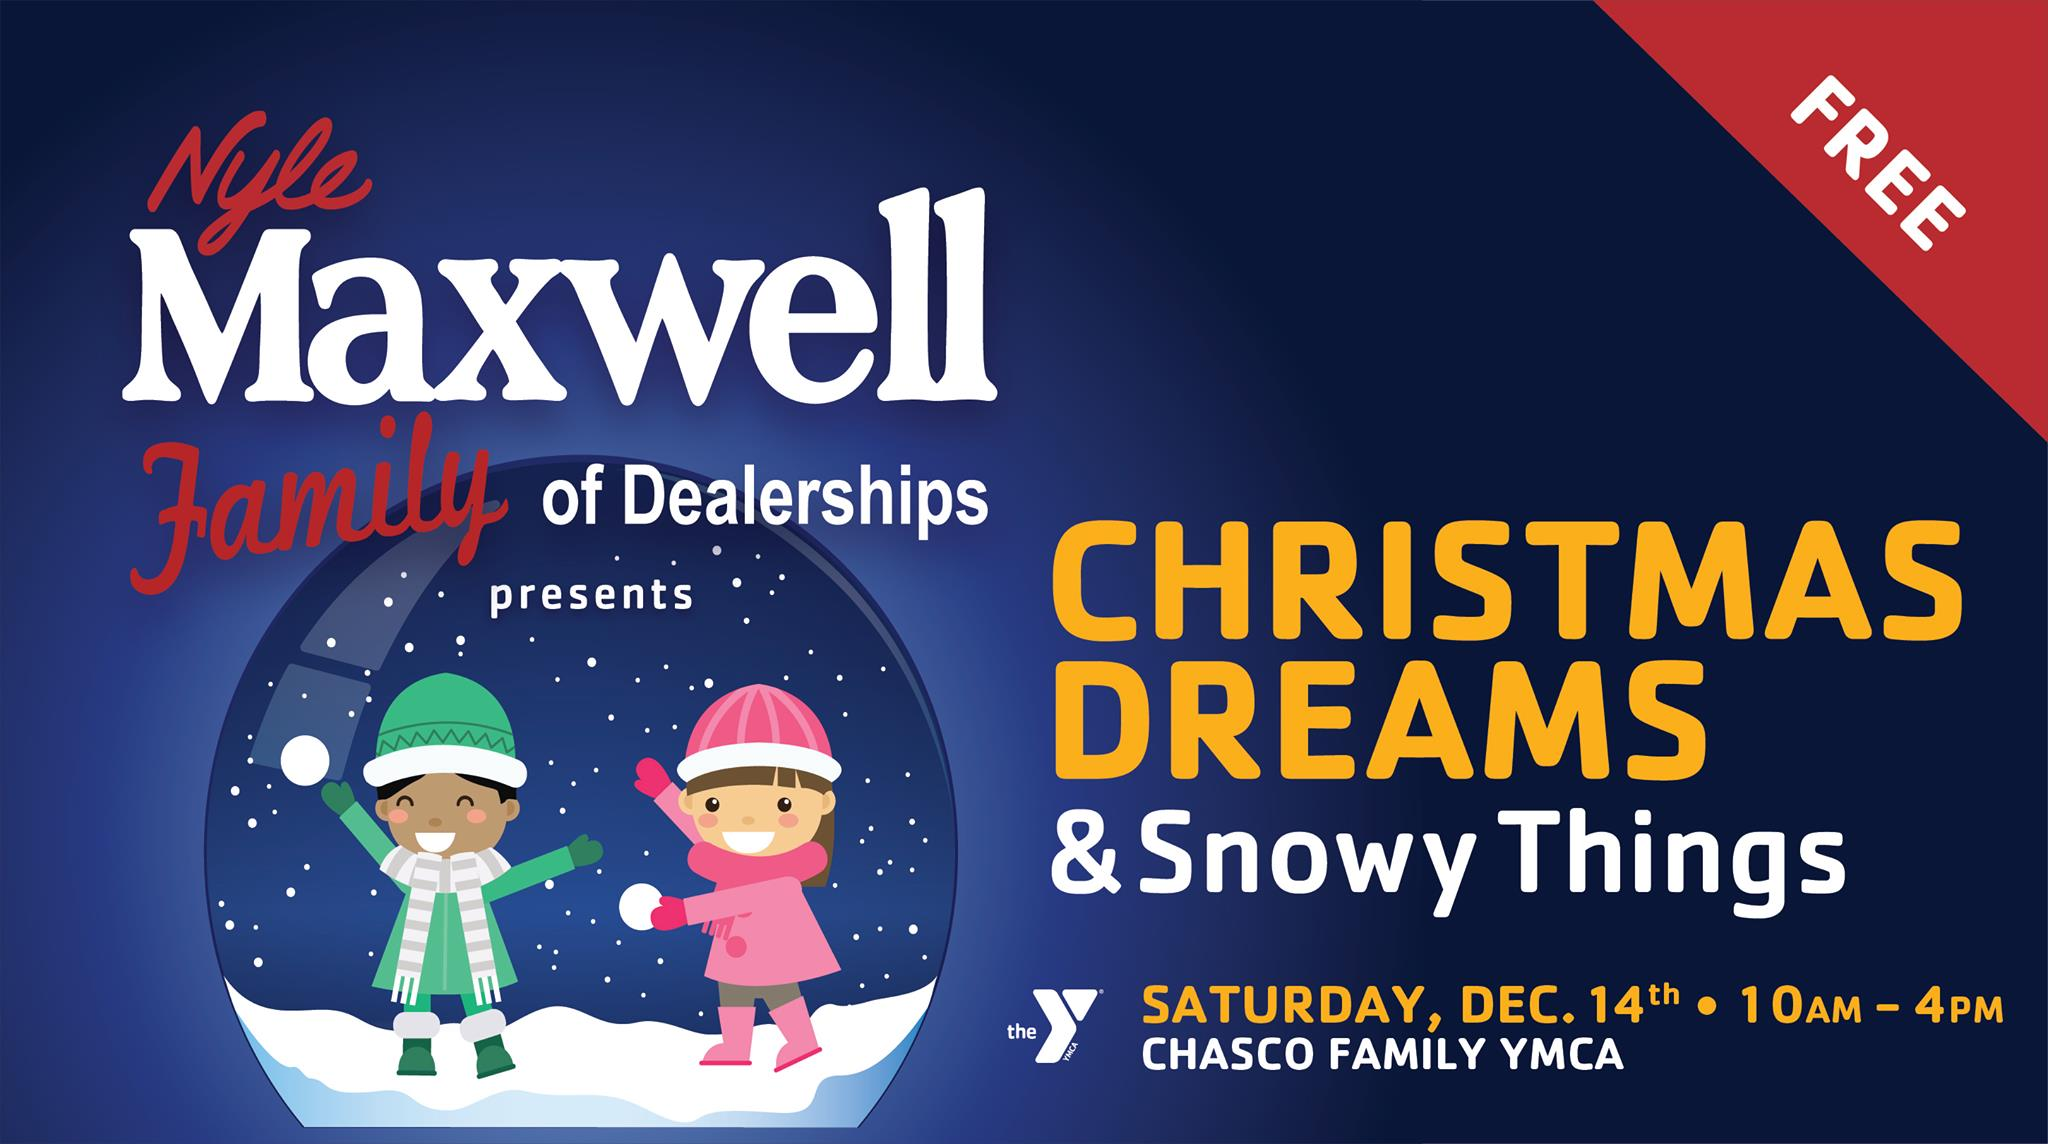 Chasco Ymca Round Rock Halloween 2020 Nyle Maxwell's Christmas Dreams & Snowy Things   Round Rock, TX